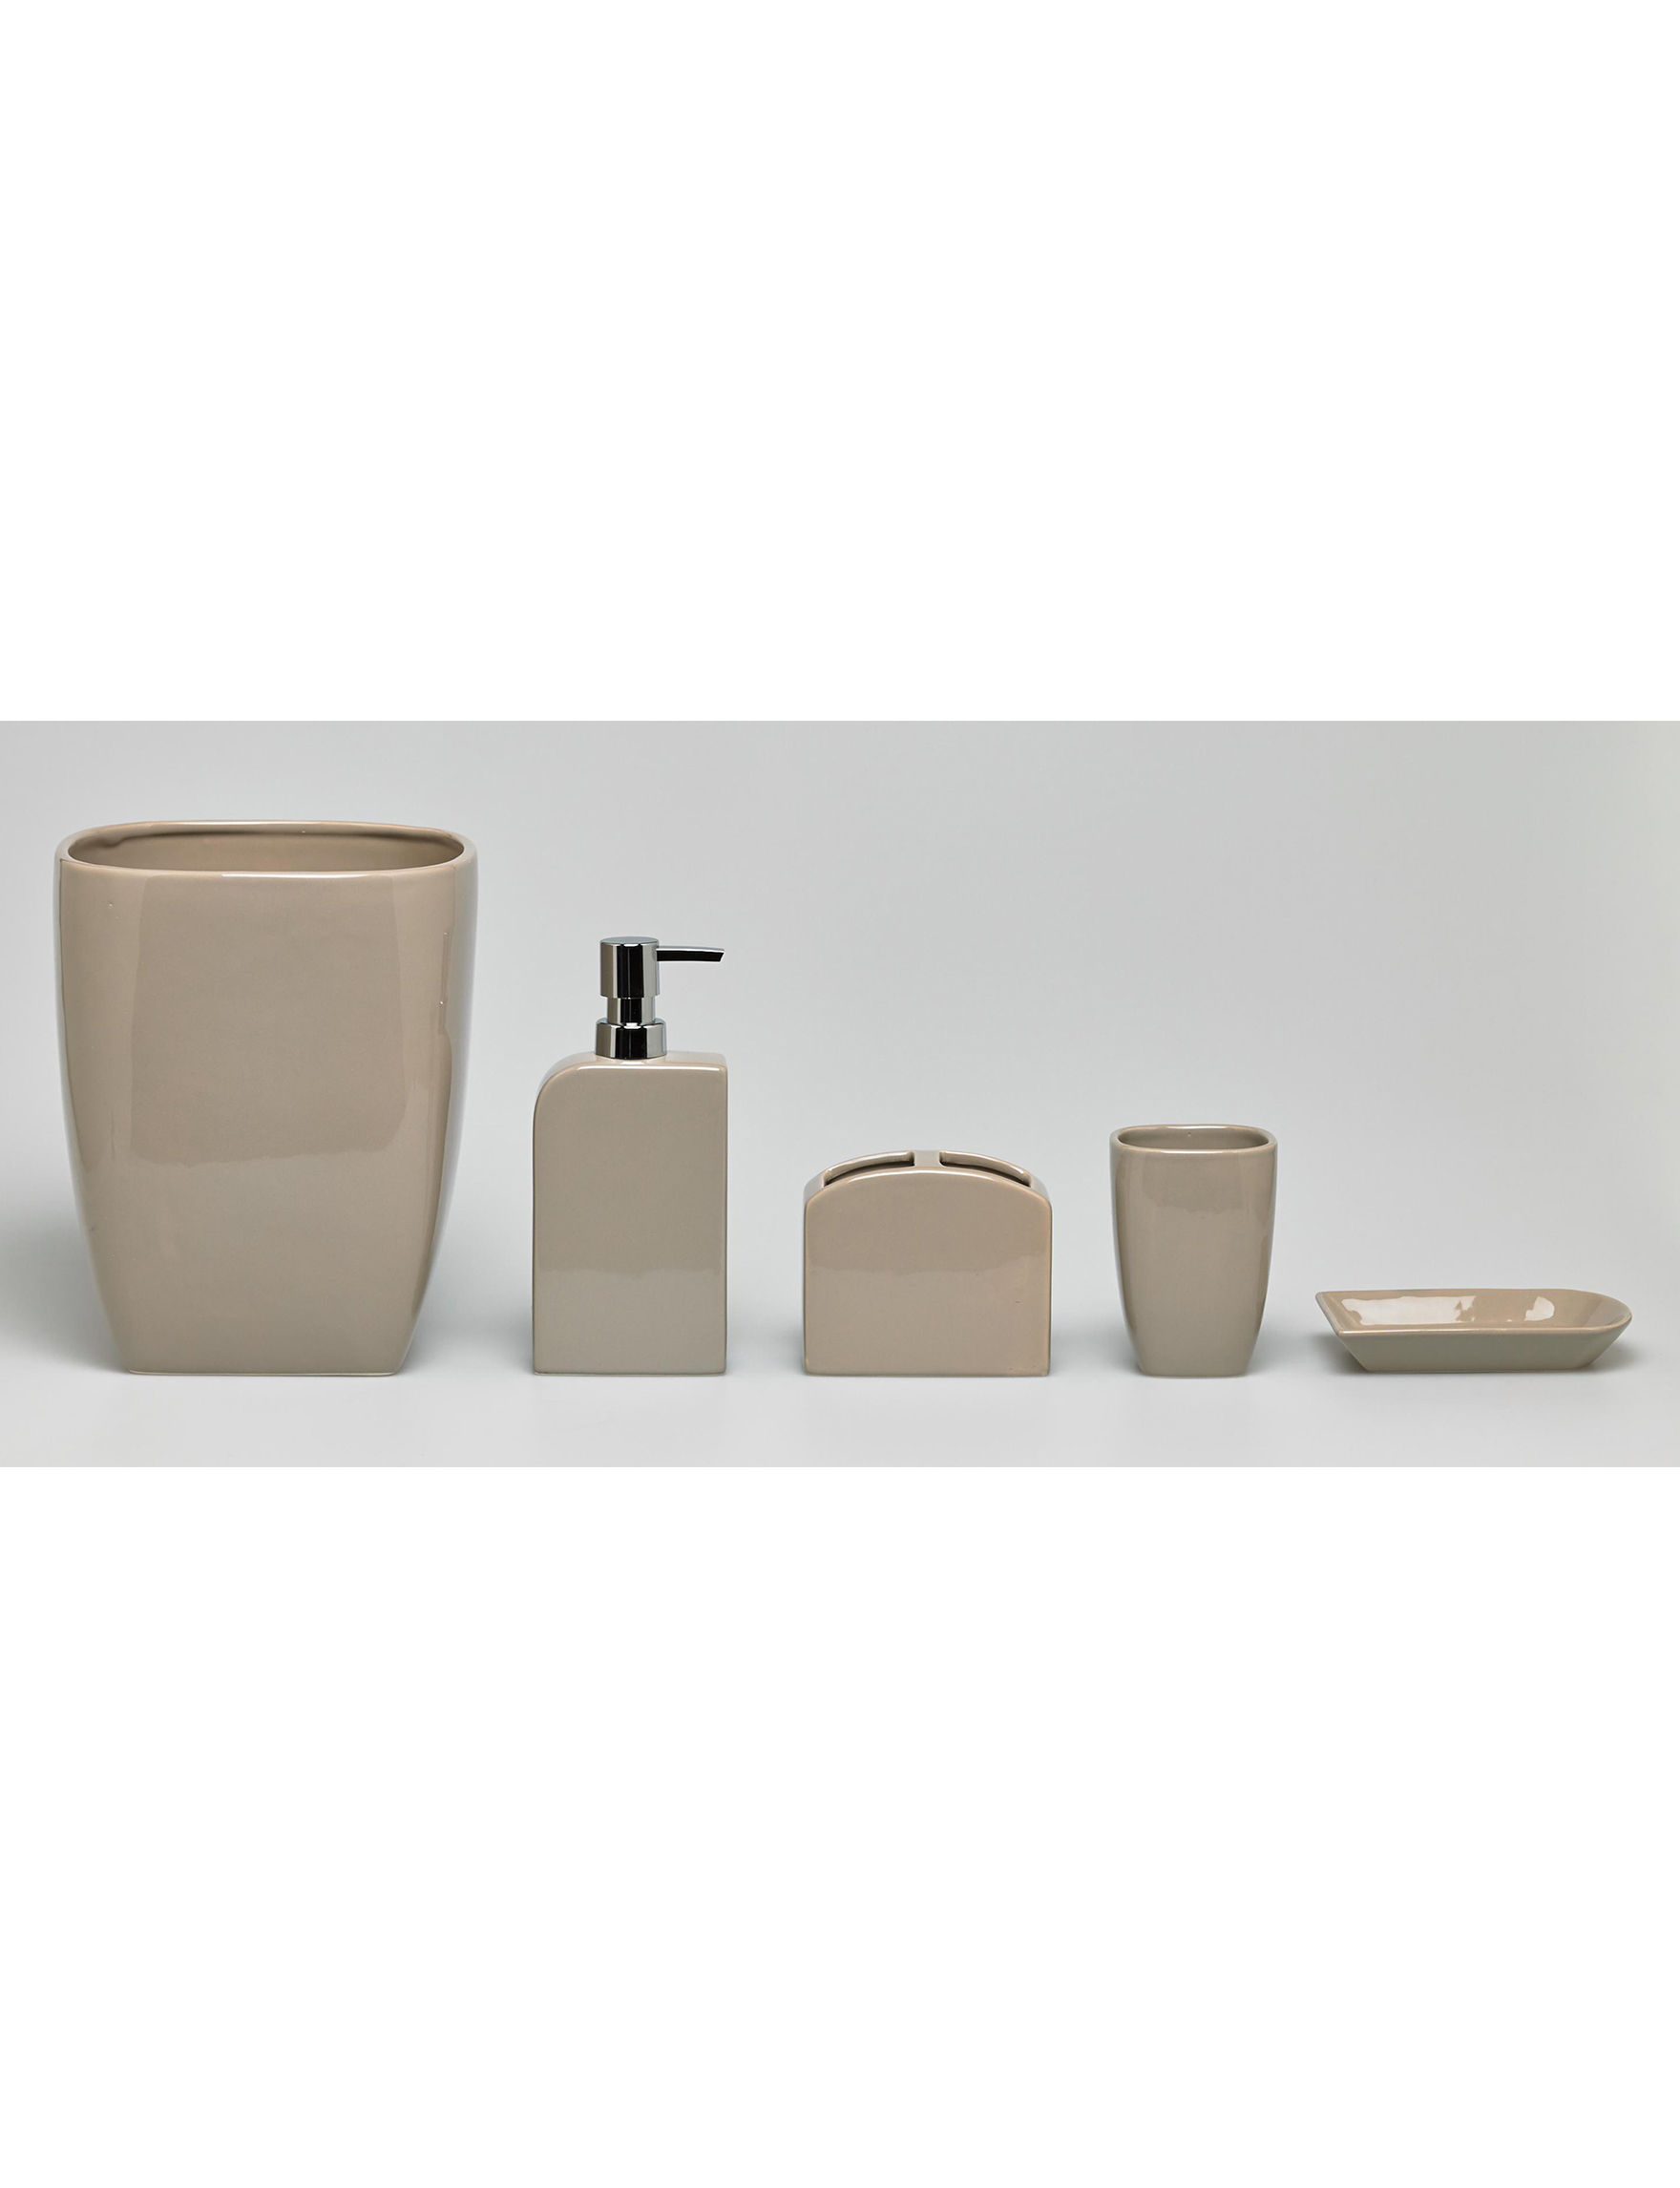 Moda  Soap & Lotion Dispensers Bath Accessories